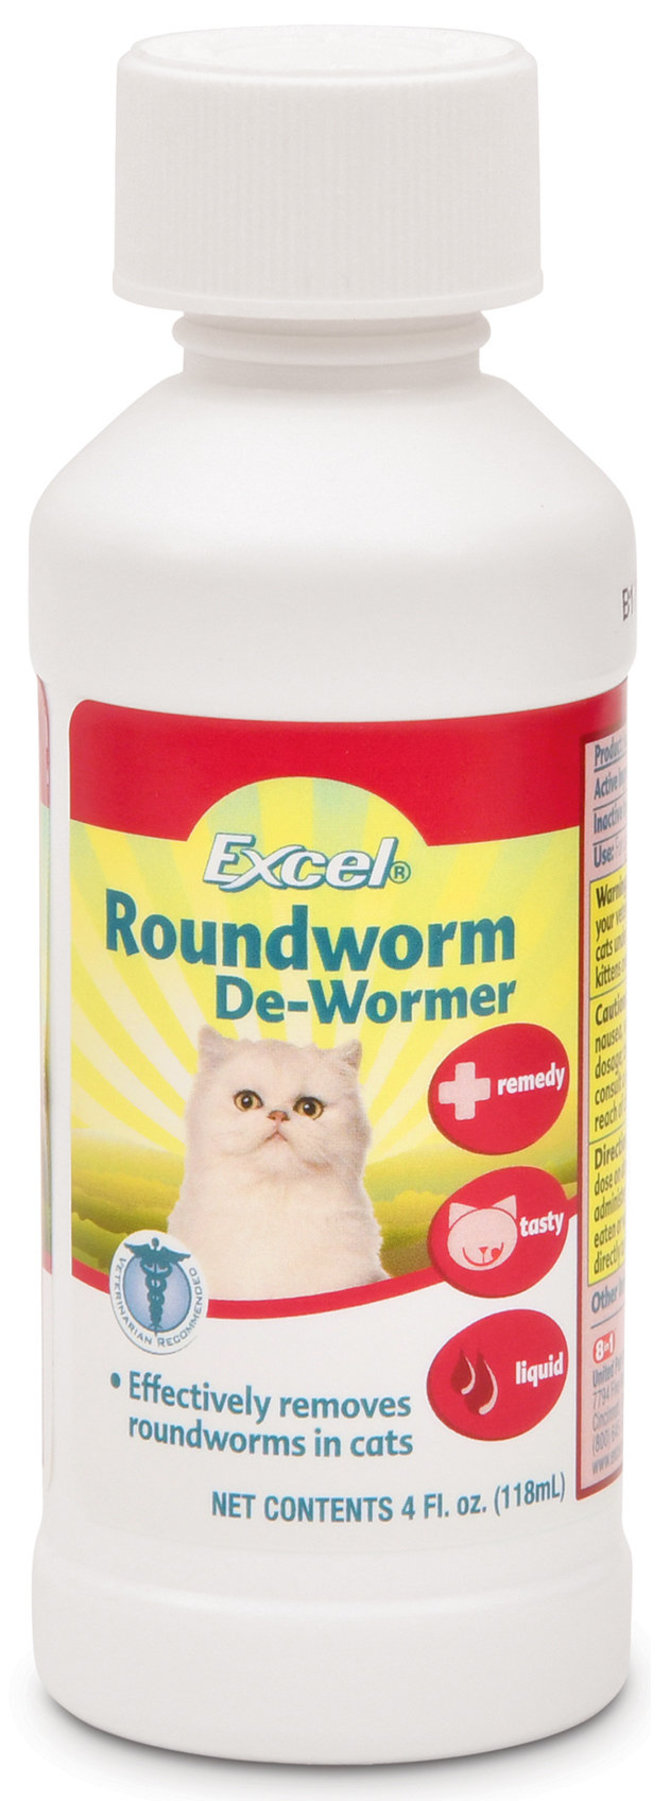 Cat Roundworms Images